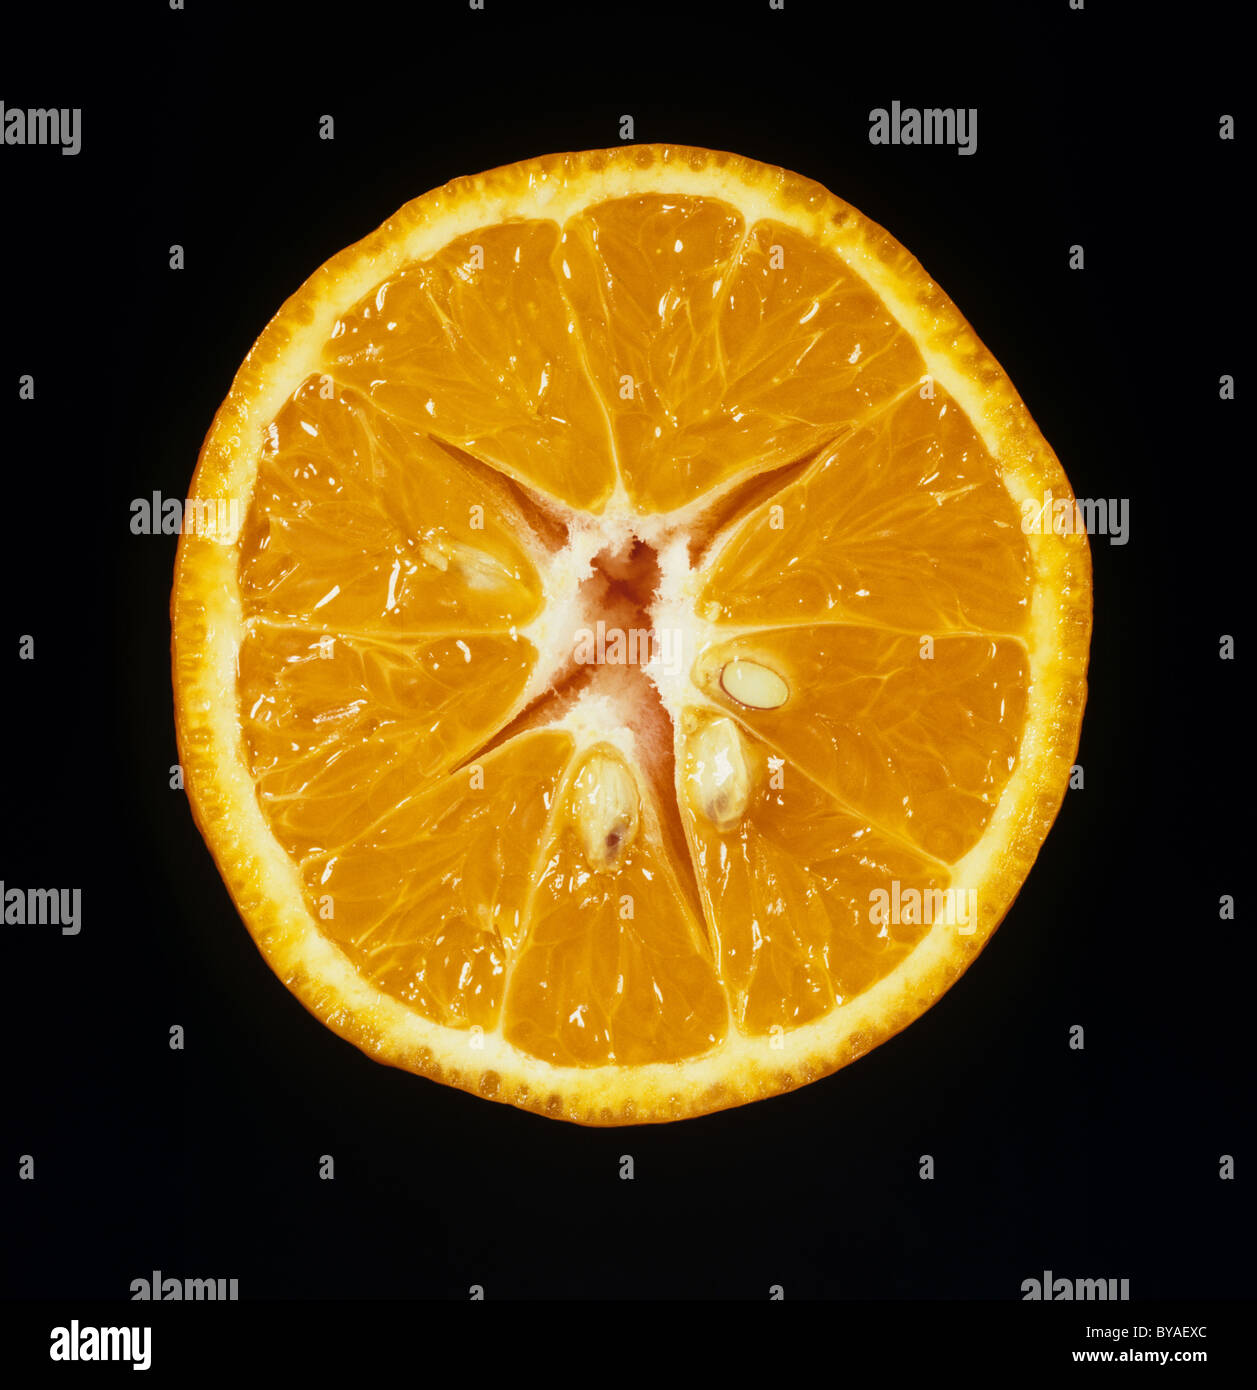 Cut section of clementine fruit variety Page - Stock Image